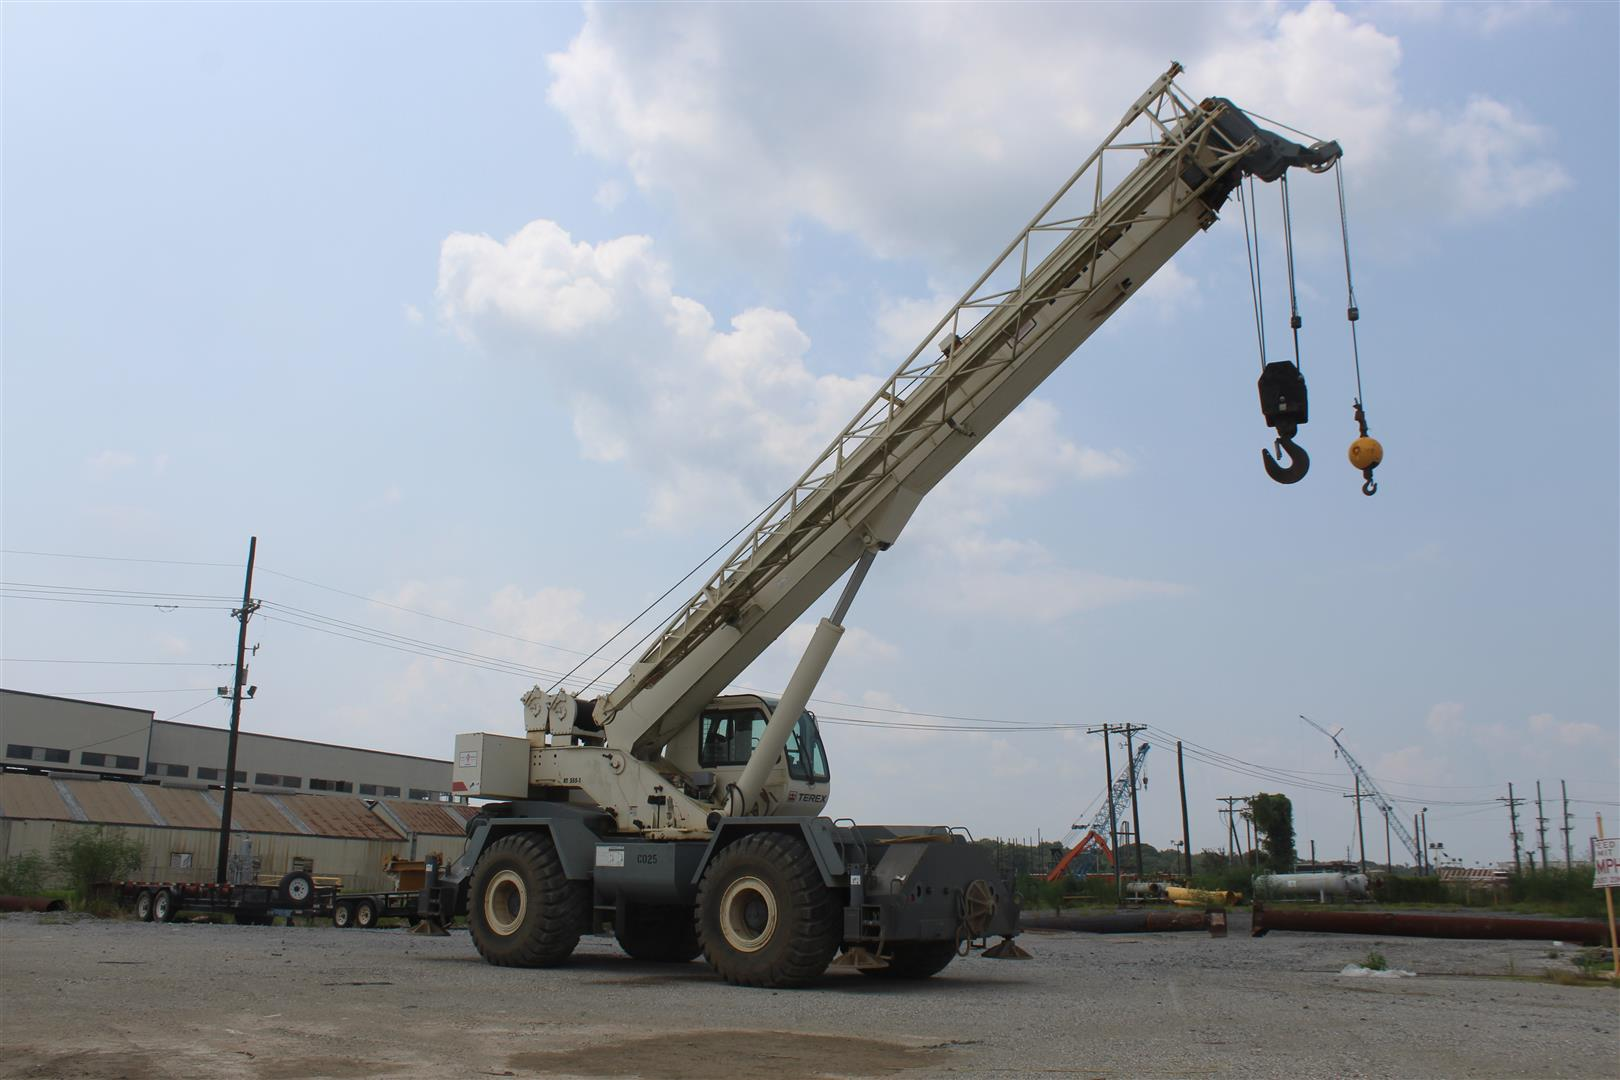 terex-rt555-cover-image